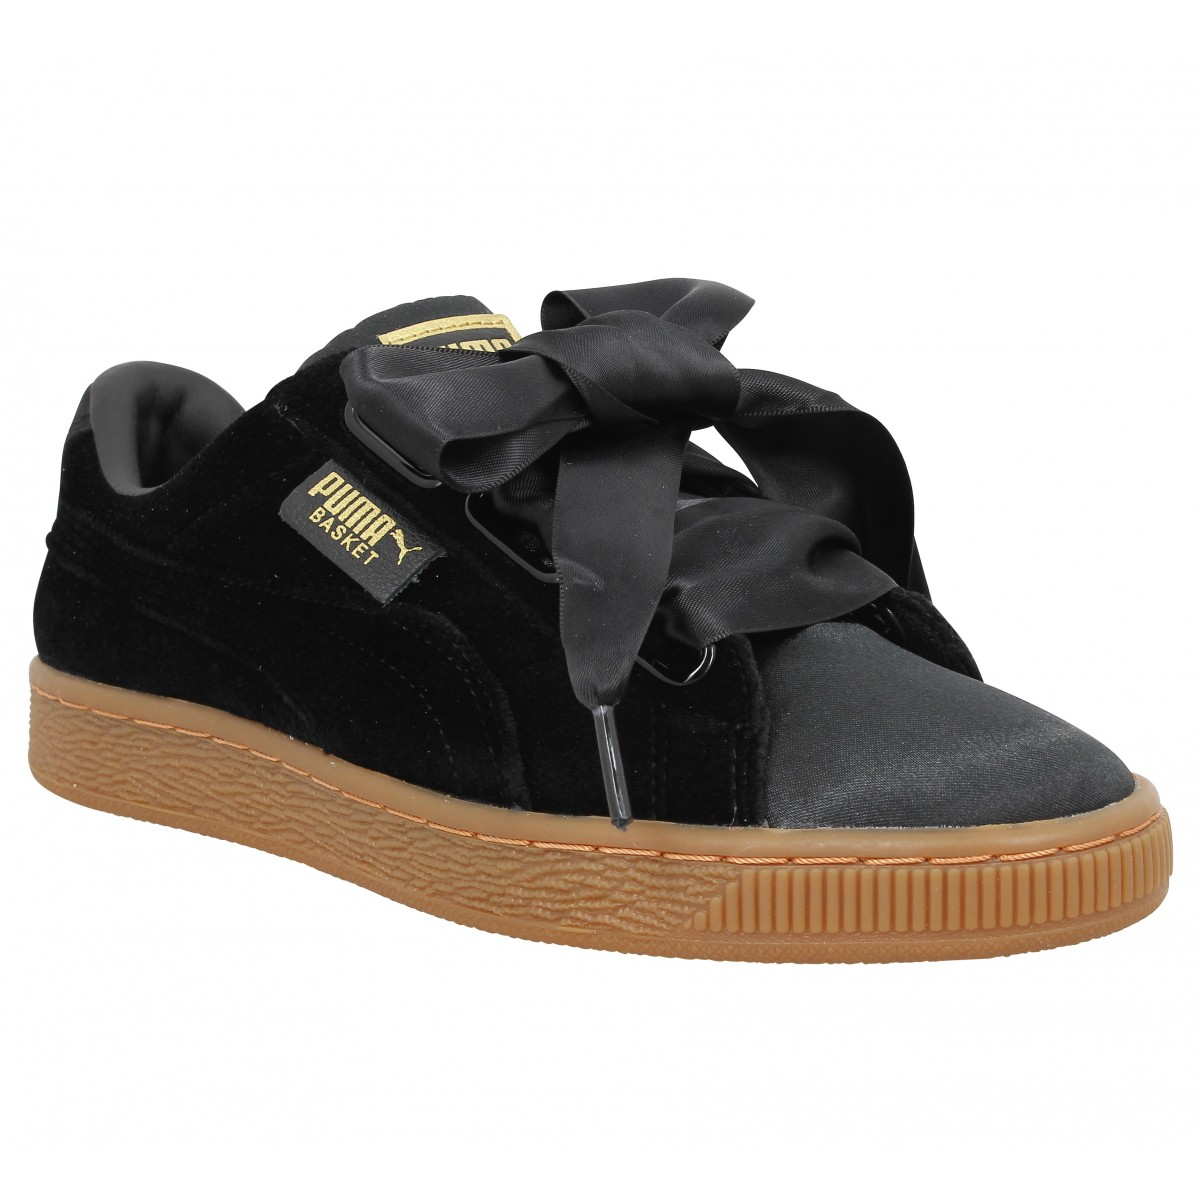 puma basket heart velvet femme noir femme fanny chaussures. Black Bedroom Furniture Sets. Home Design Ideas